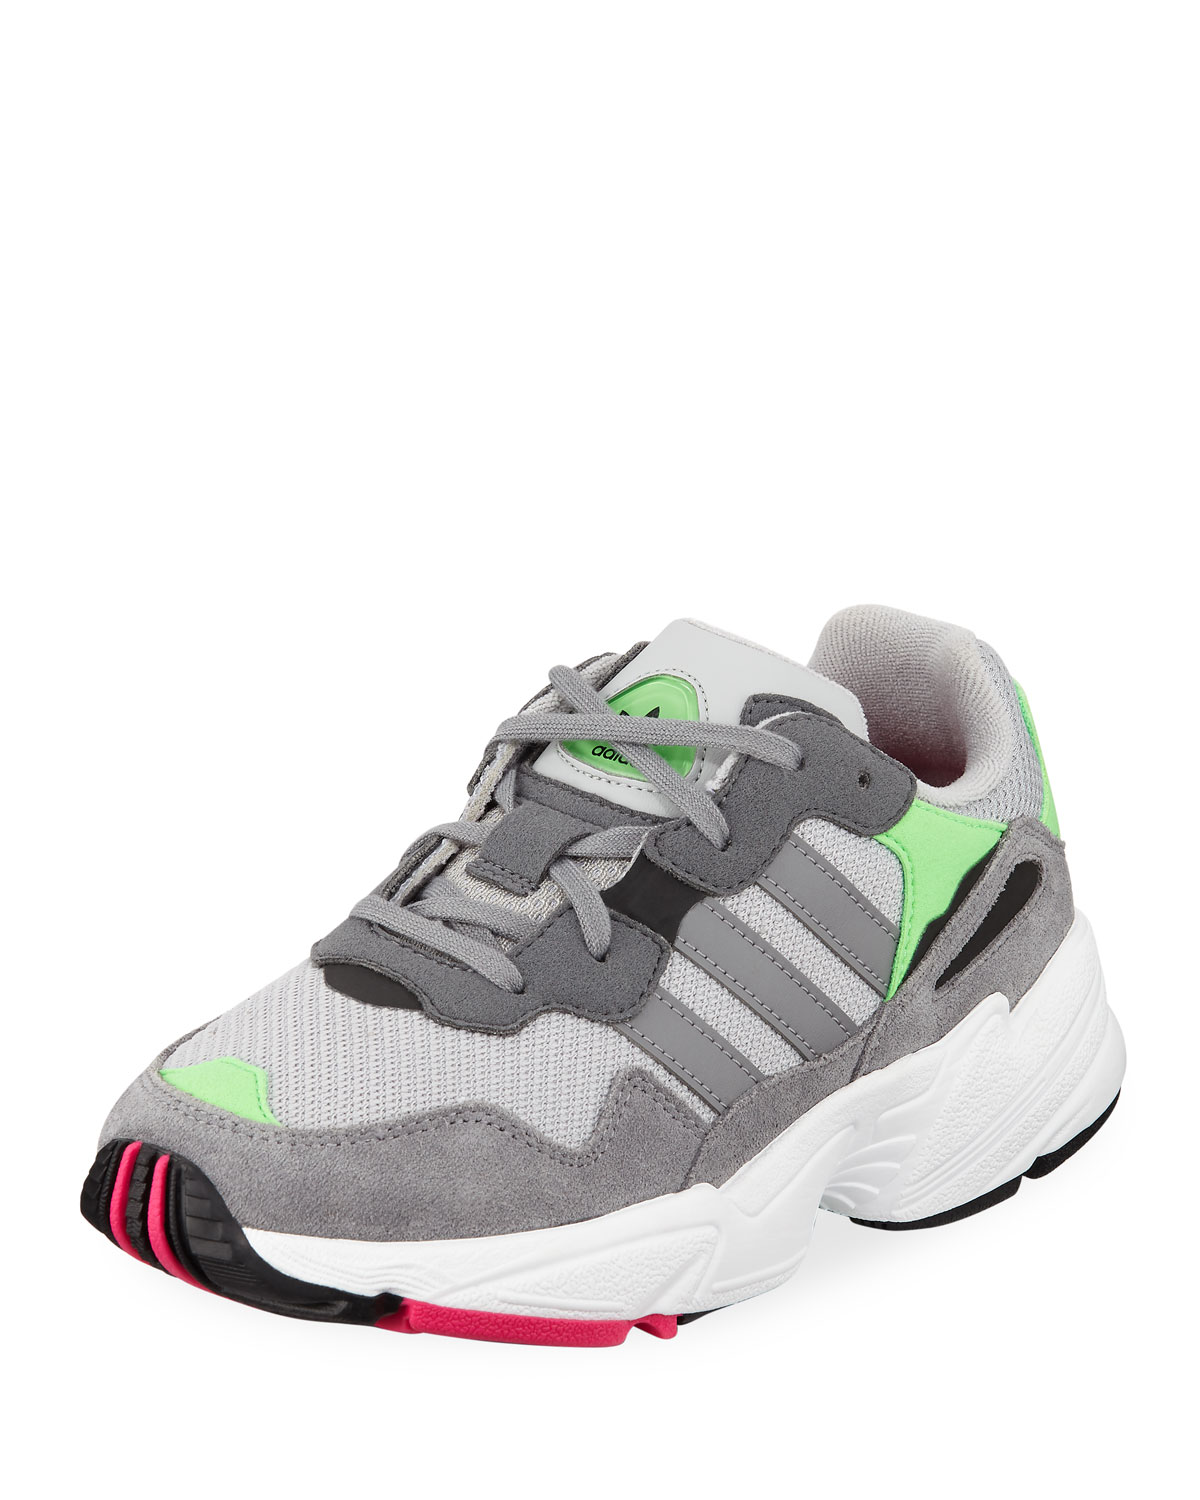 official photos dbbb0 a5b4c AdidasYung-96 Colorblock Sneakers, Kids